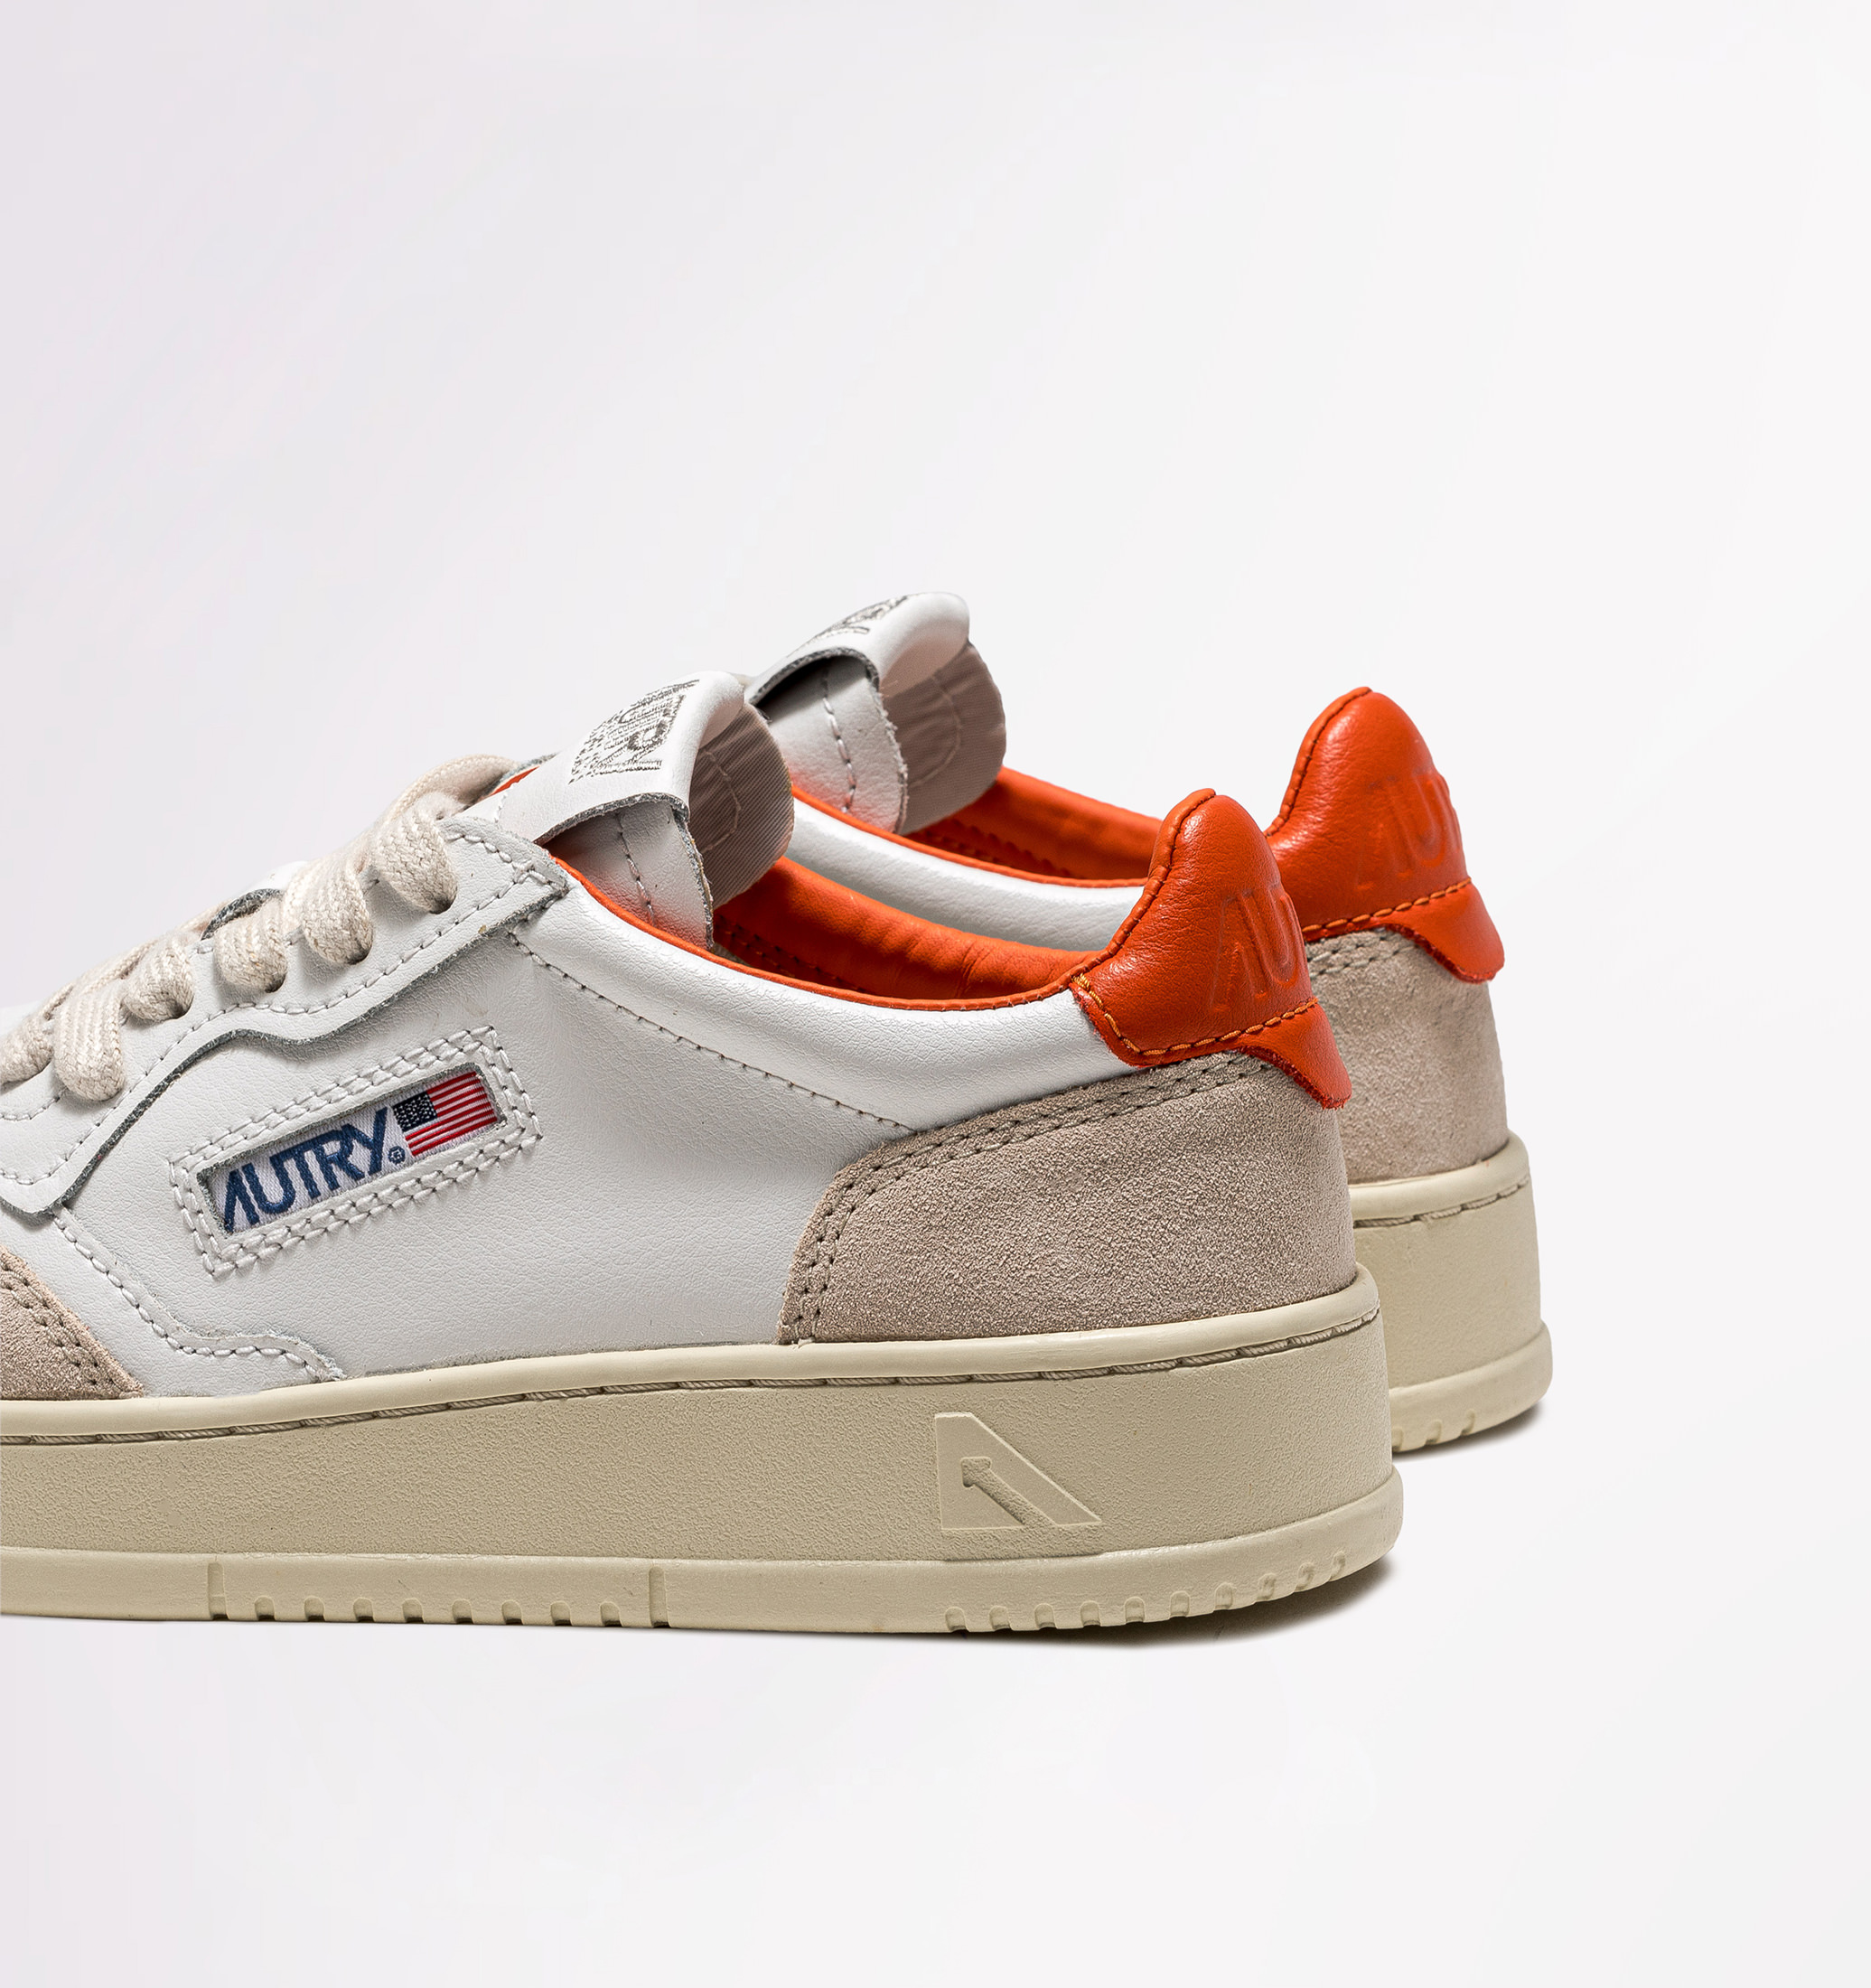 autry-01-low-leather-suede-white-orange-back